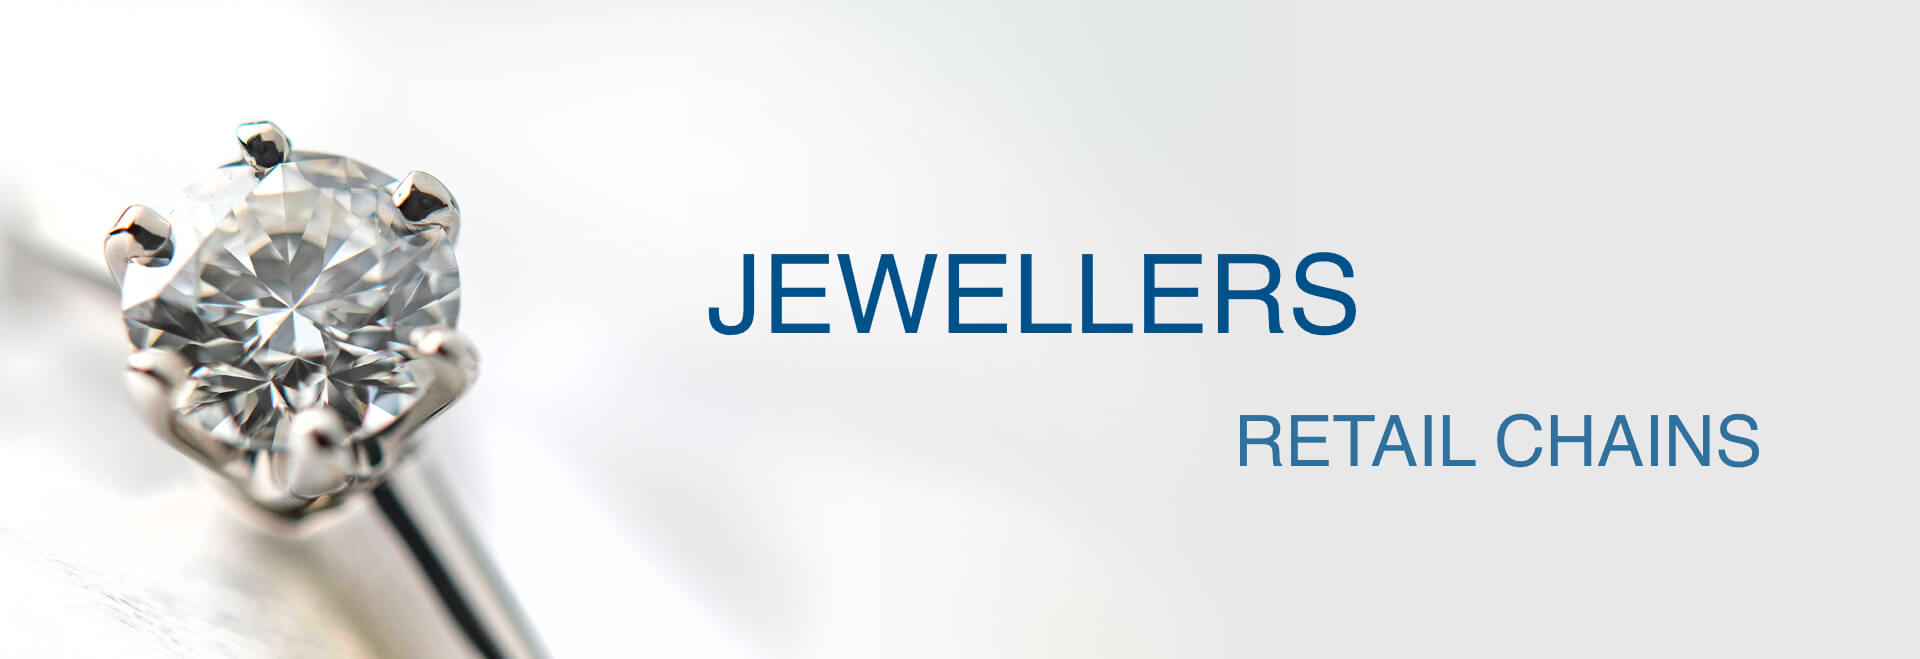 Jewellers - Retail Chains